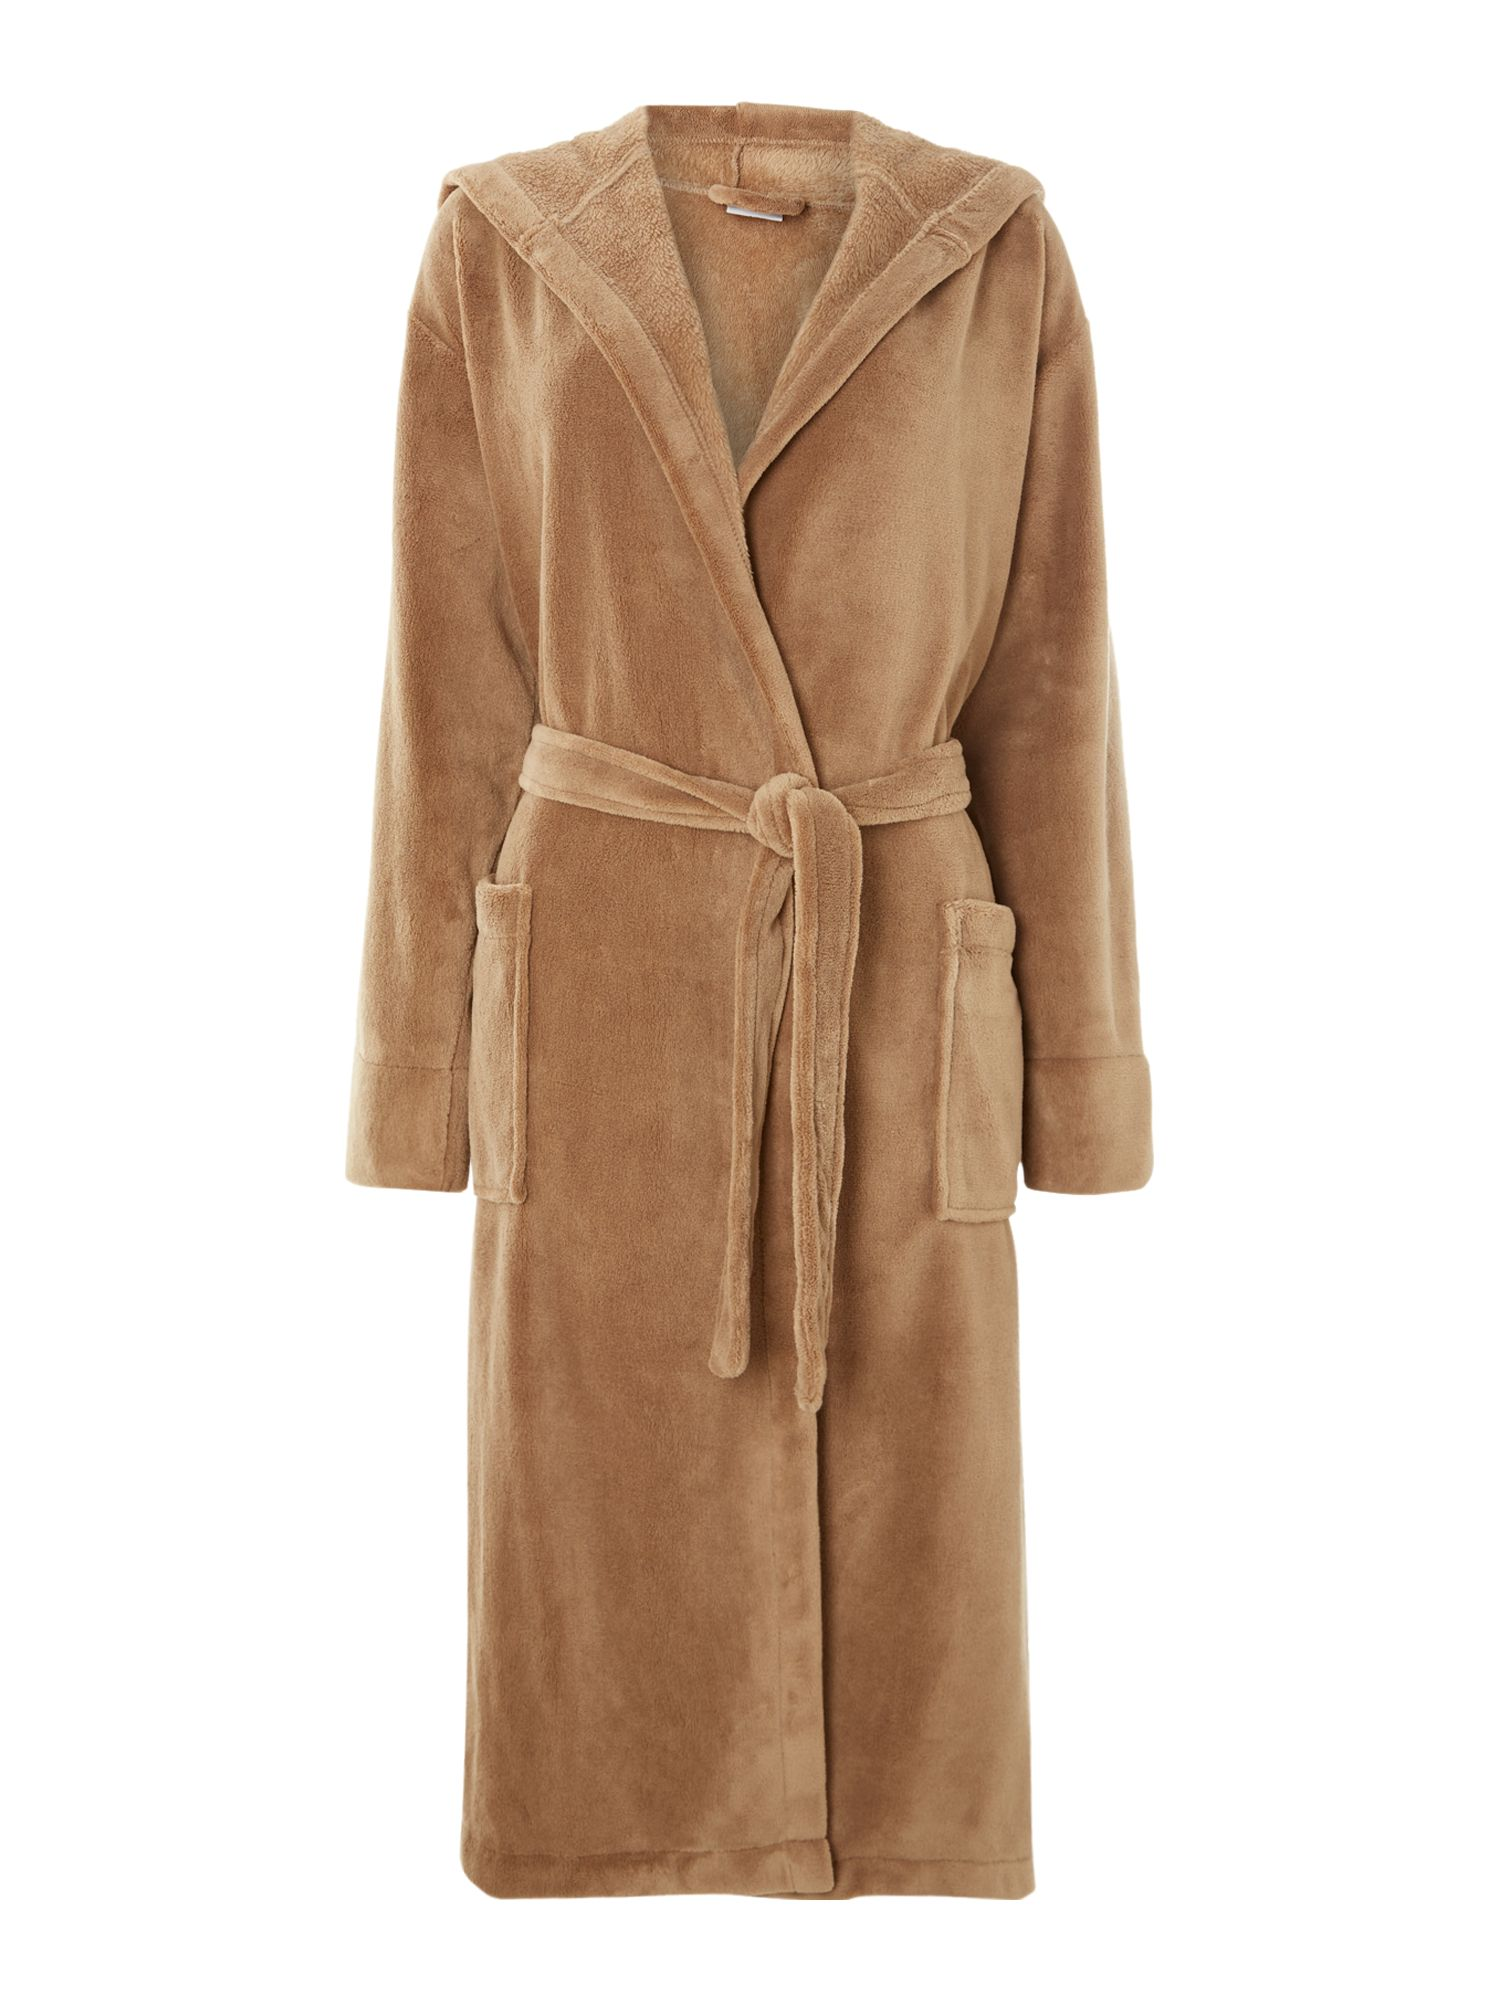 Fleece robe with hood in mocha s/m